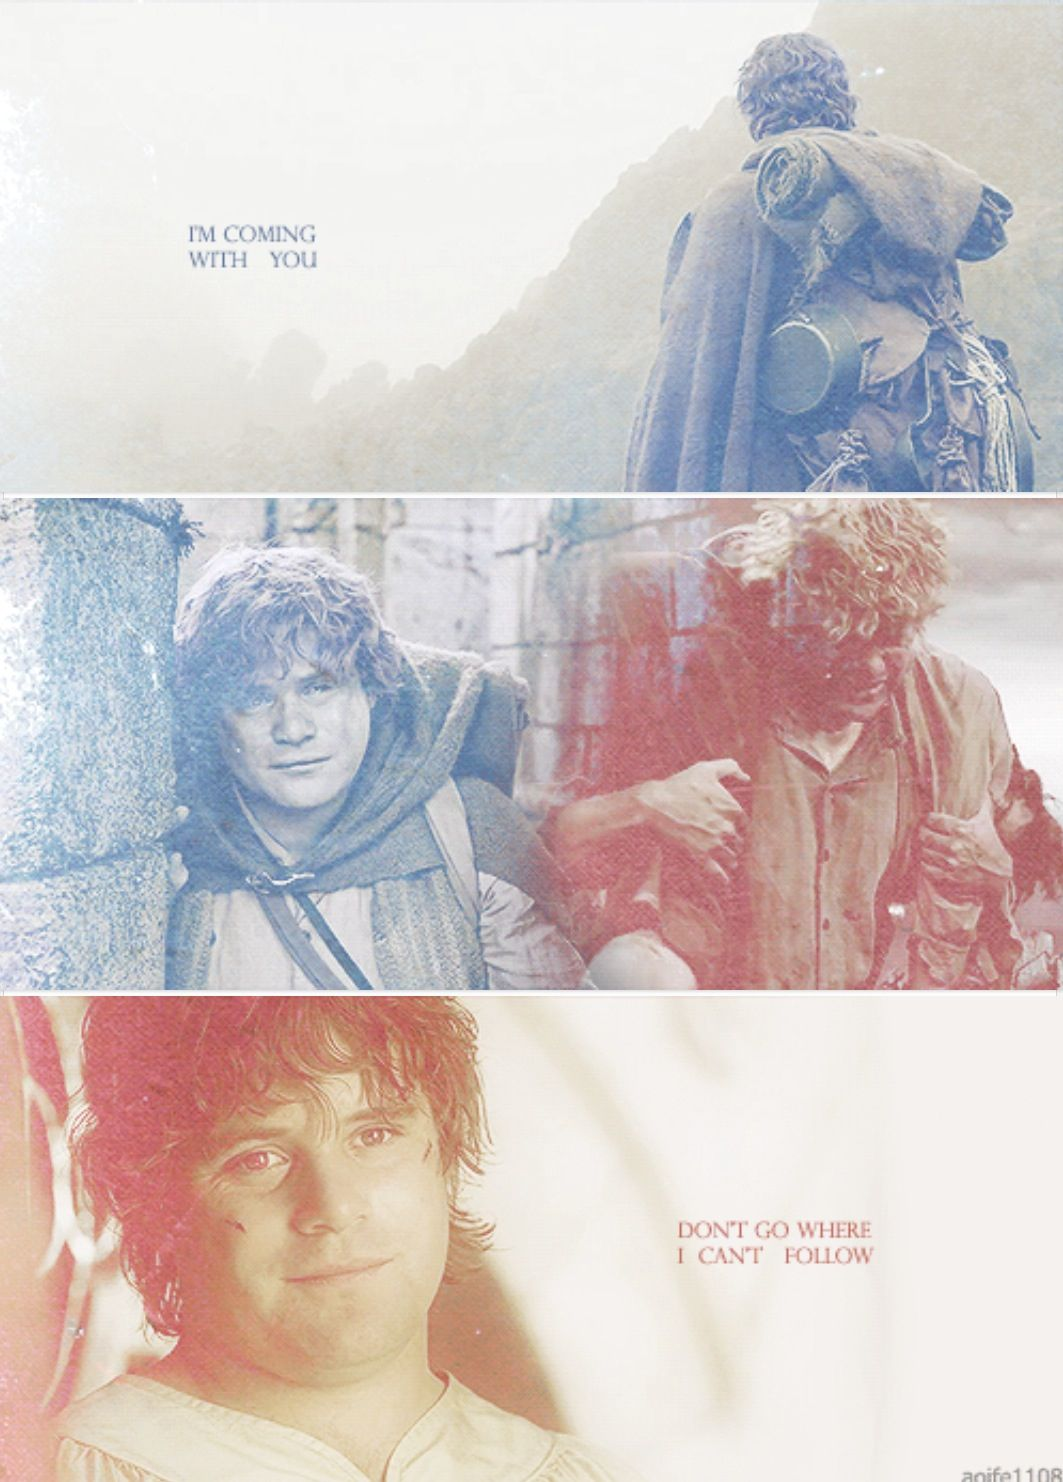 Pin By Ruth Guest On Samwise Gamgee The Brave Lord Of The Rings The Hobbit Samwise Gamgee